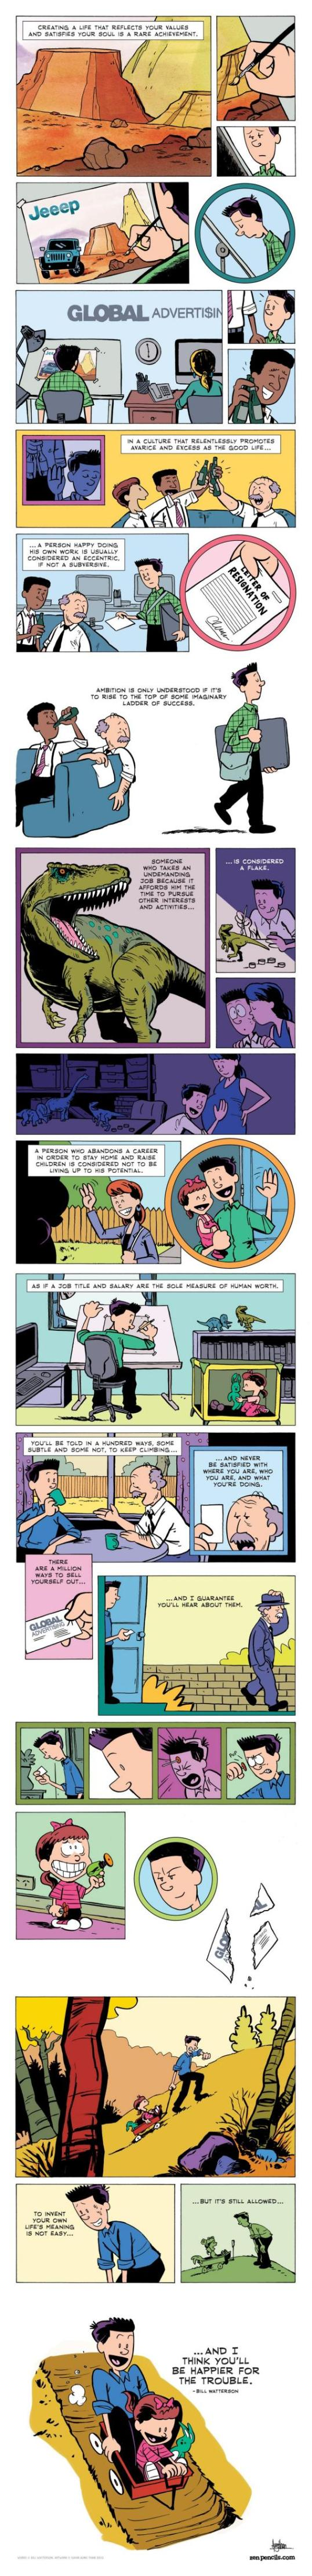 watterson_advice_large.jpg.CROP.article568-large